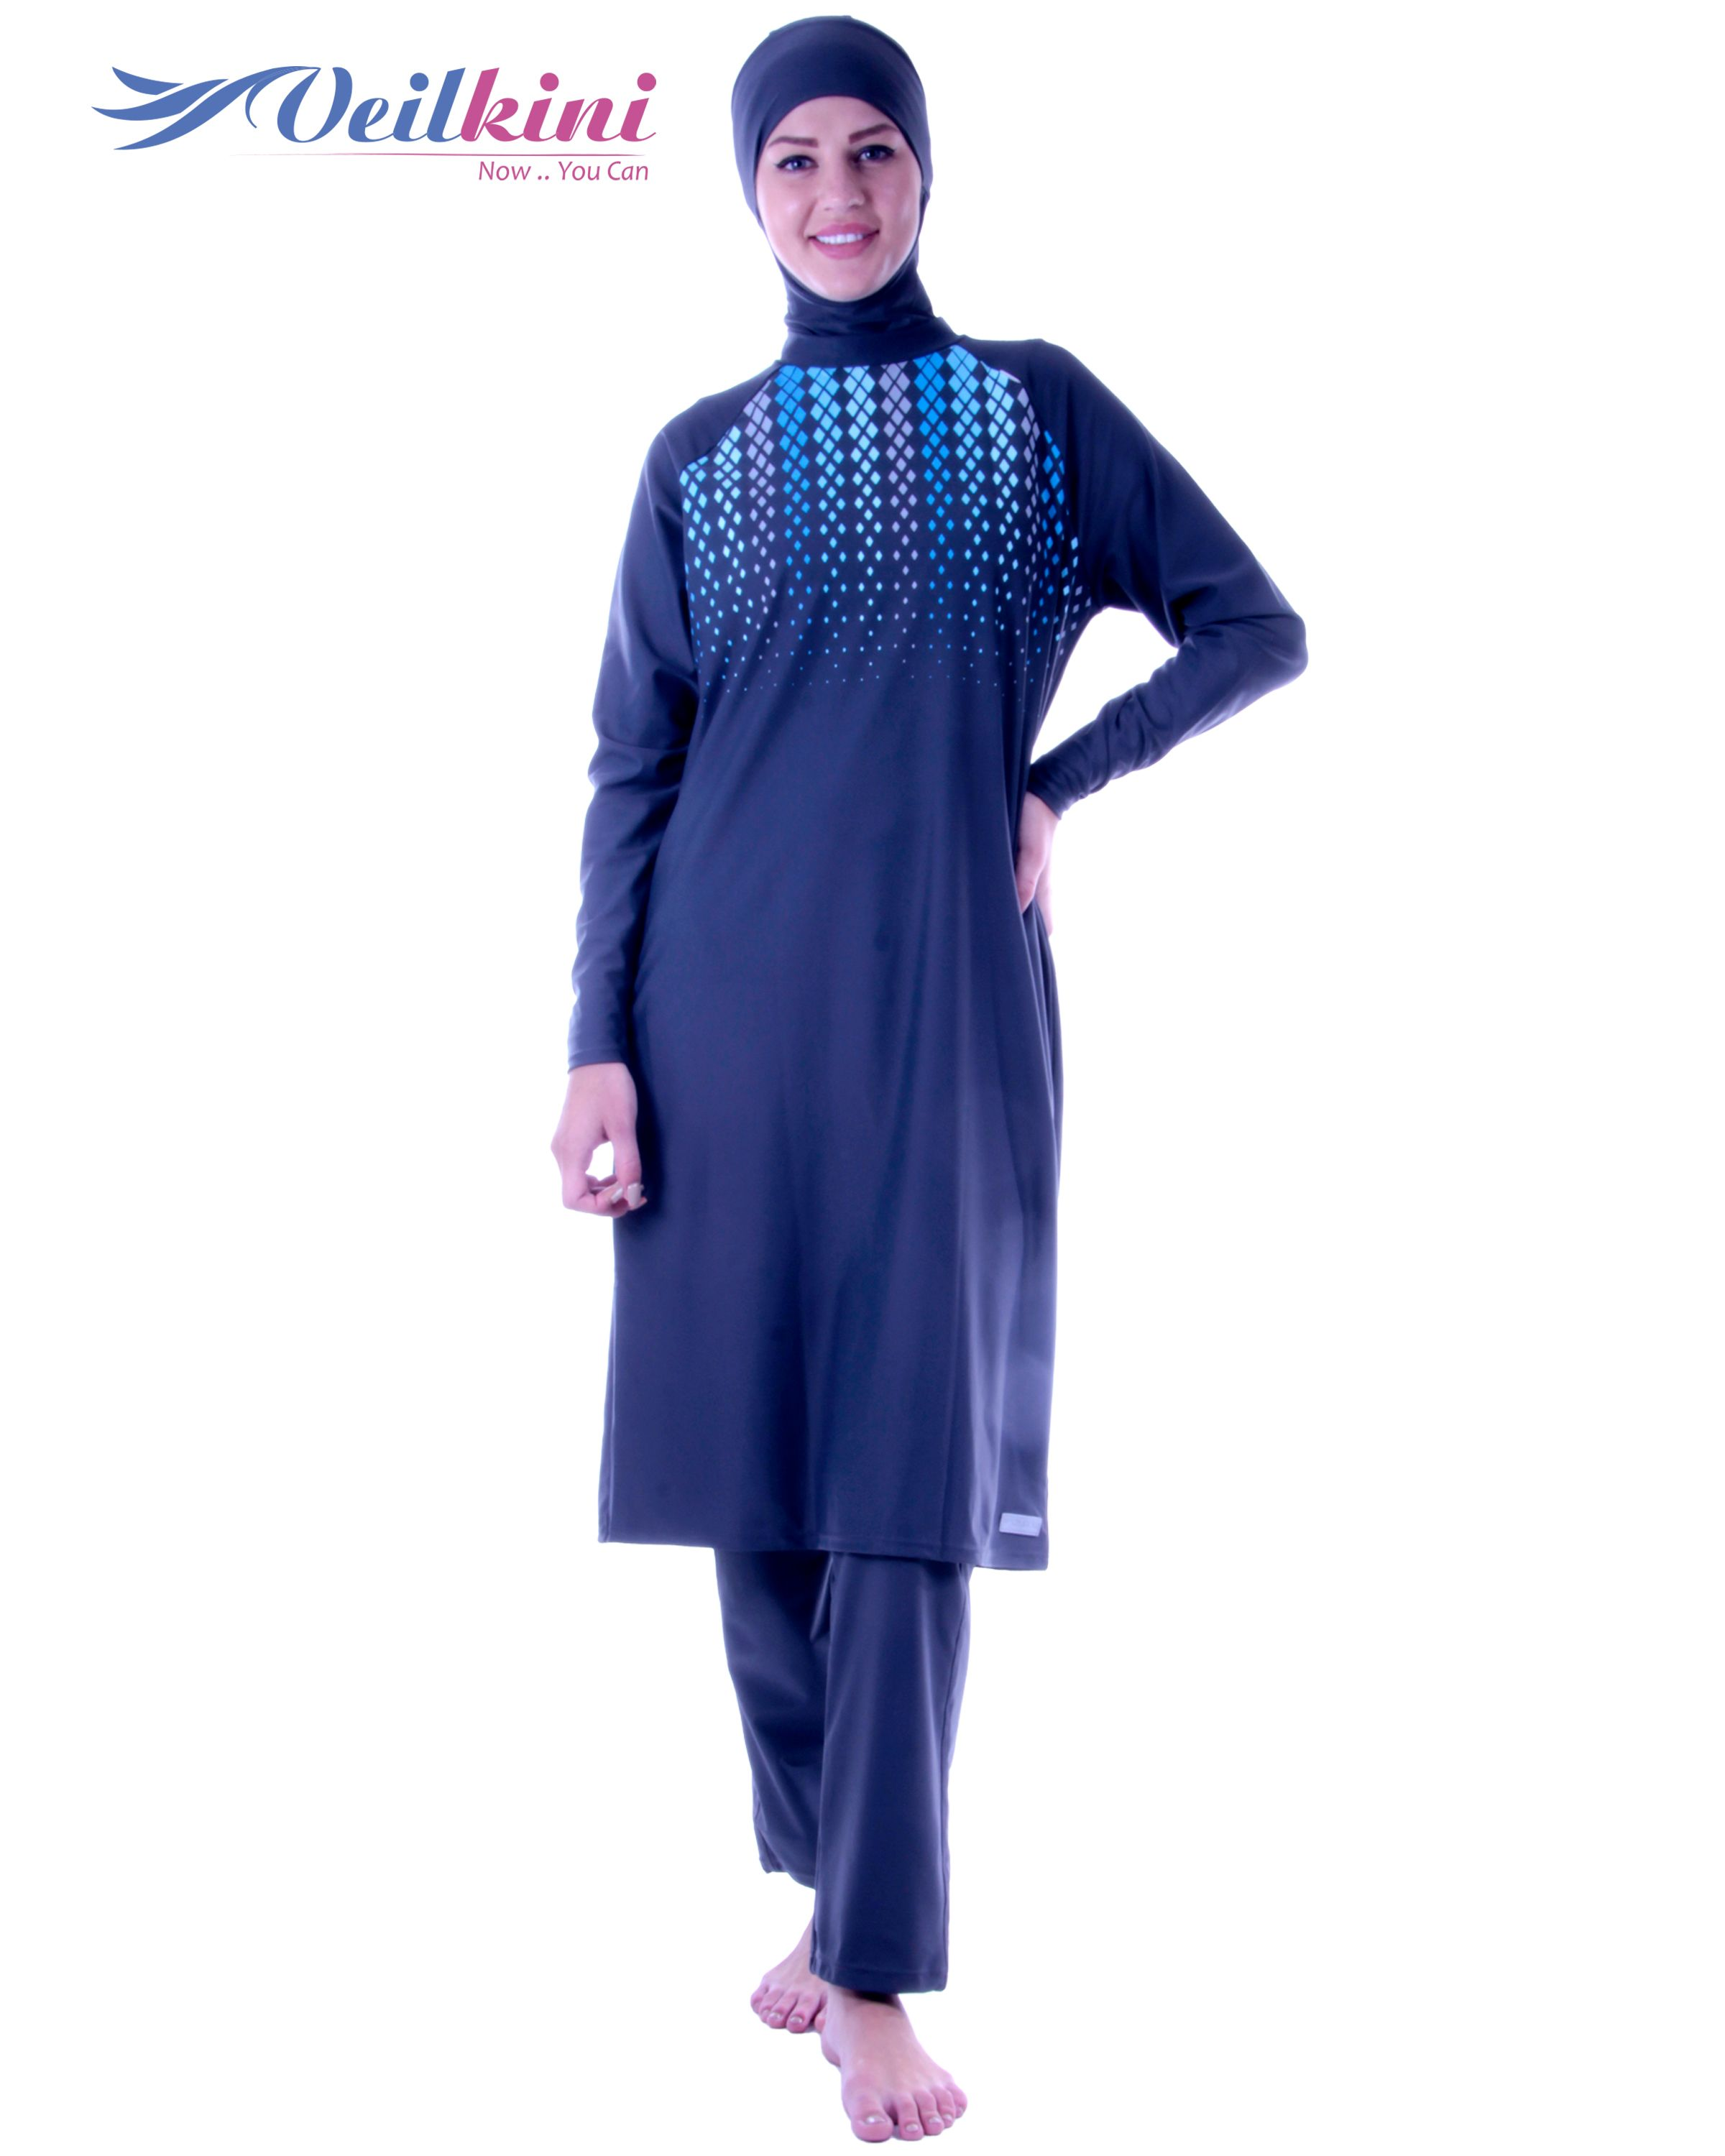 2693170364c Long Cover #burkini #veilkini #burqini | Veilkini Swimwear | Muslim ...